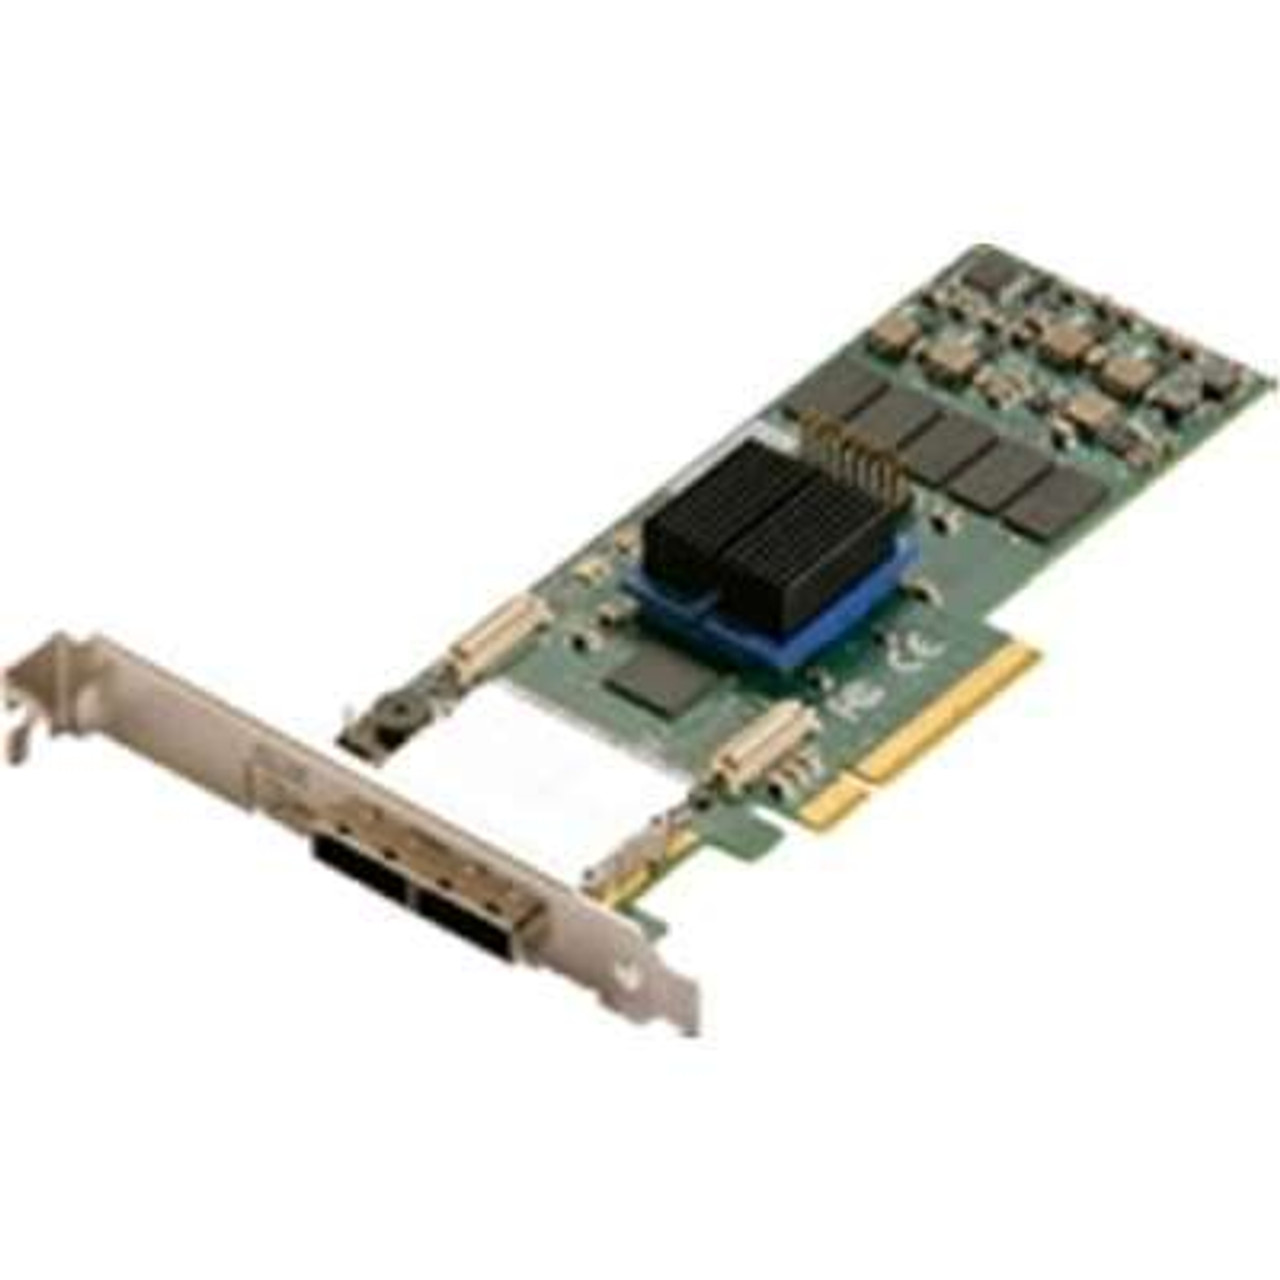 Plug-in Card Low Profile Components Other ESAH-1280-000 ATTO Expresssas H1280 Storage Controller